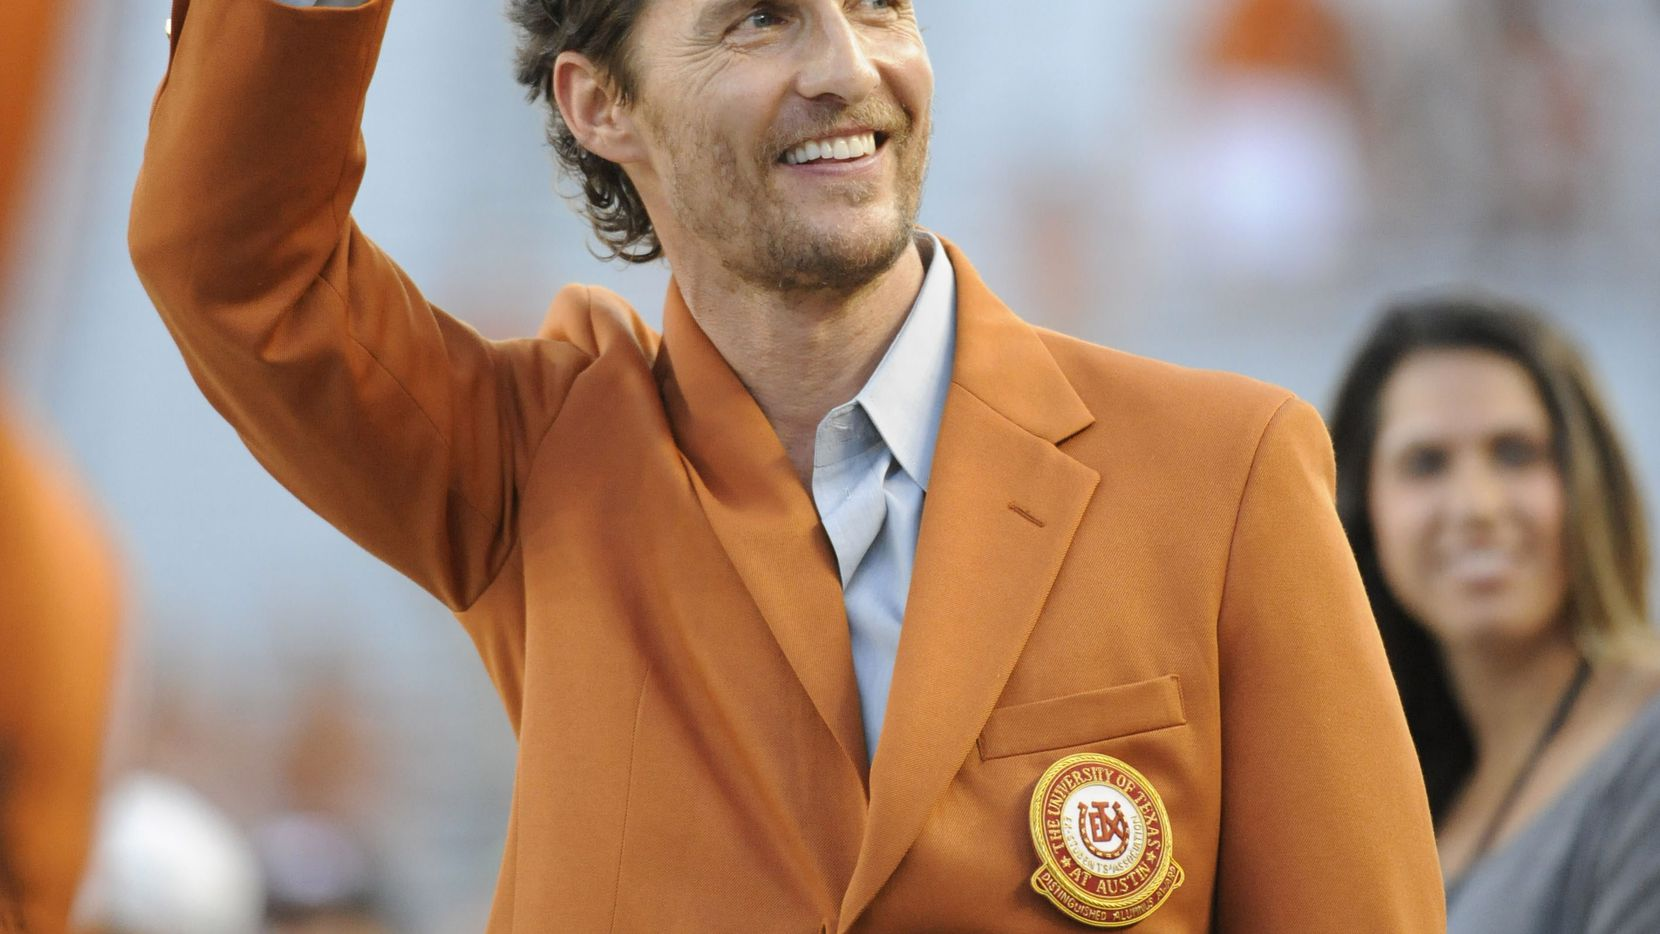 Actor Matthew McConaughey bleeds burnt orange and is a frequent guest on the sidelines at Texas Longhorns games.